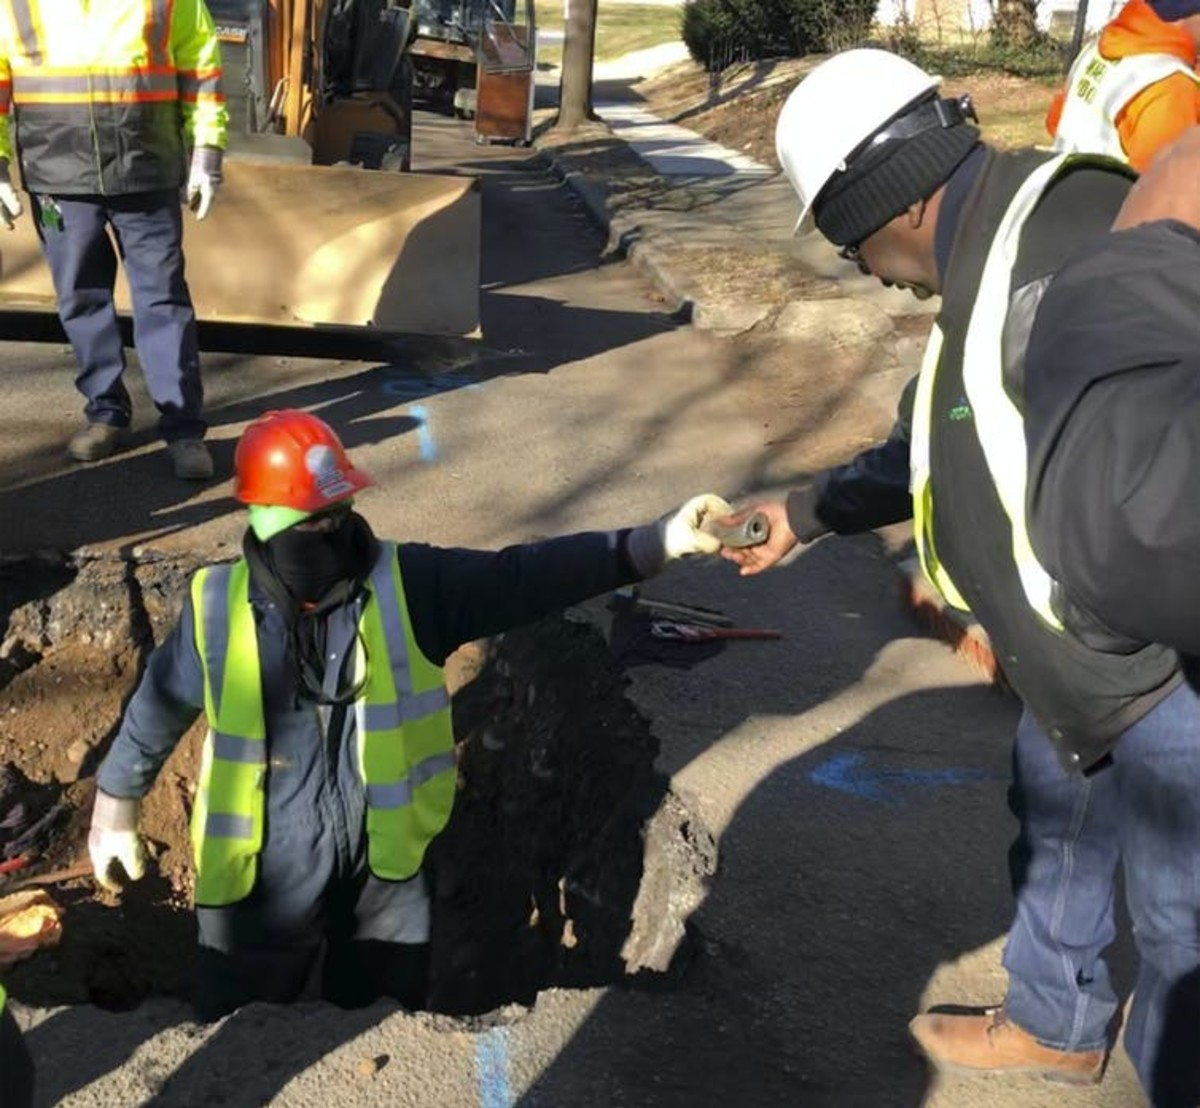 Workers remove water service lines in Trenton, New Jersey, on Jan. 9, 2020. The city is replacing 37,000 lead pipes over five years. AP Photo/Mike Catalini